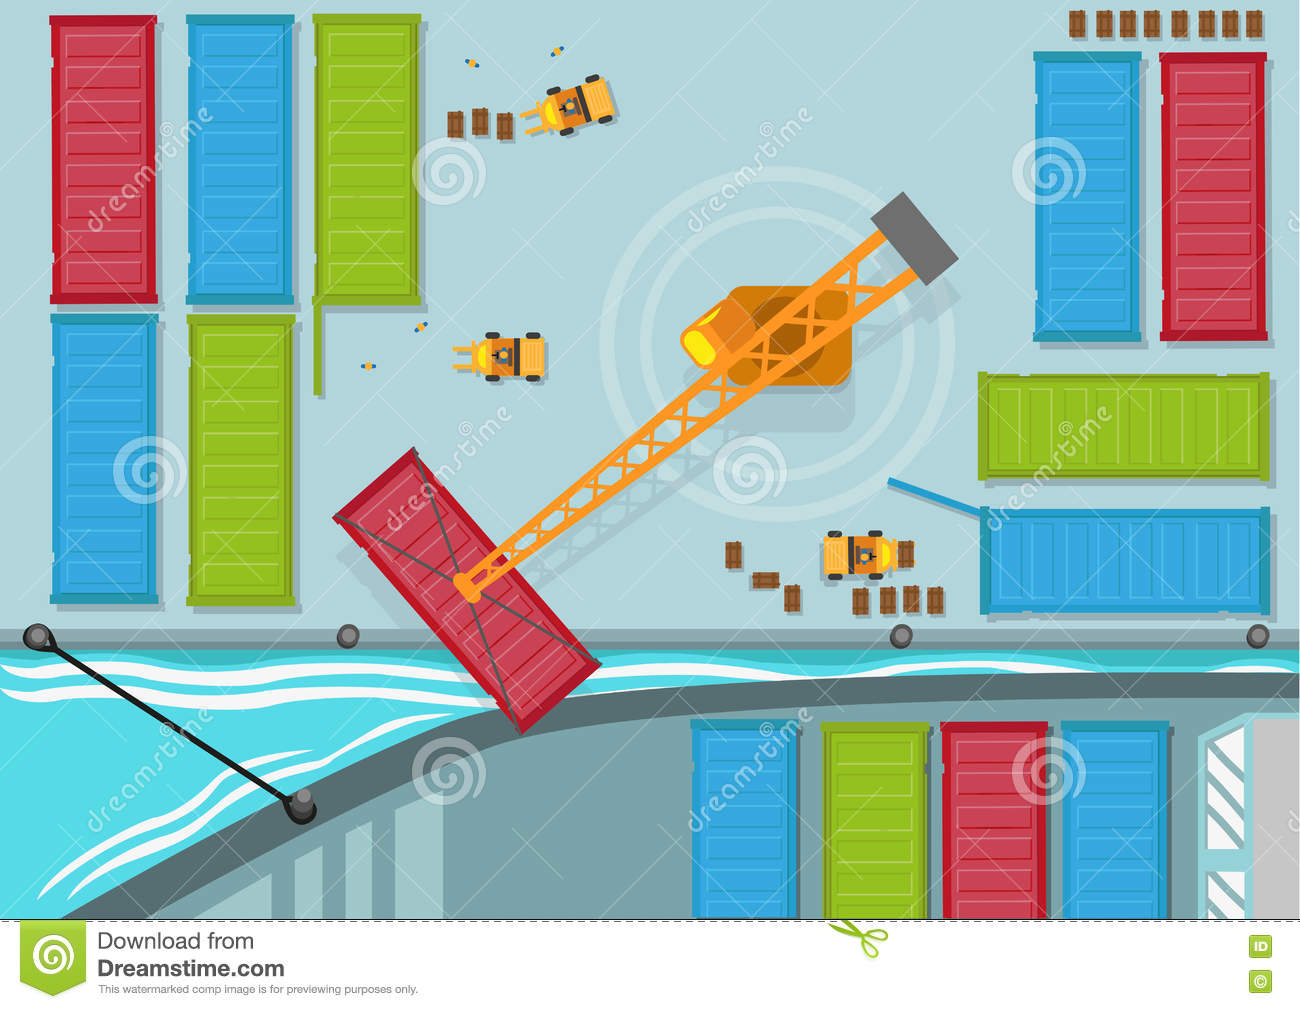 Birds Eye View Stock Illustrations.